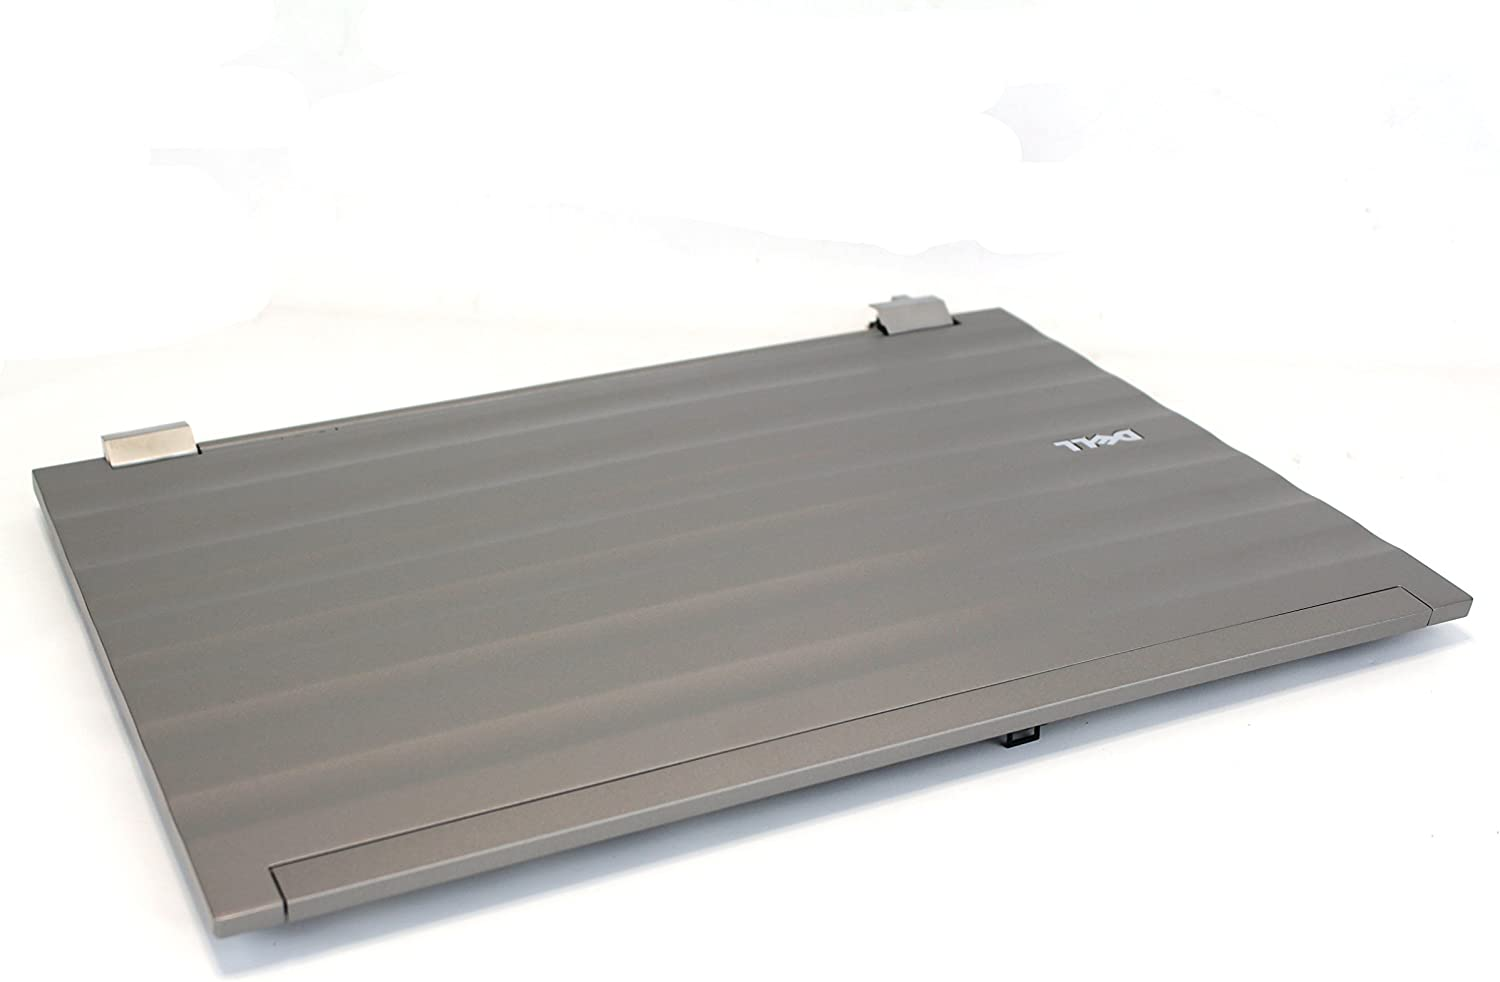 Dell Precision M4400 LCD Back Top Cover Lid Plastic Assembly w/ Hinges For RGB-LED Backlighting - P351D, 0P351D